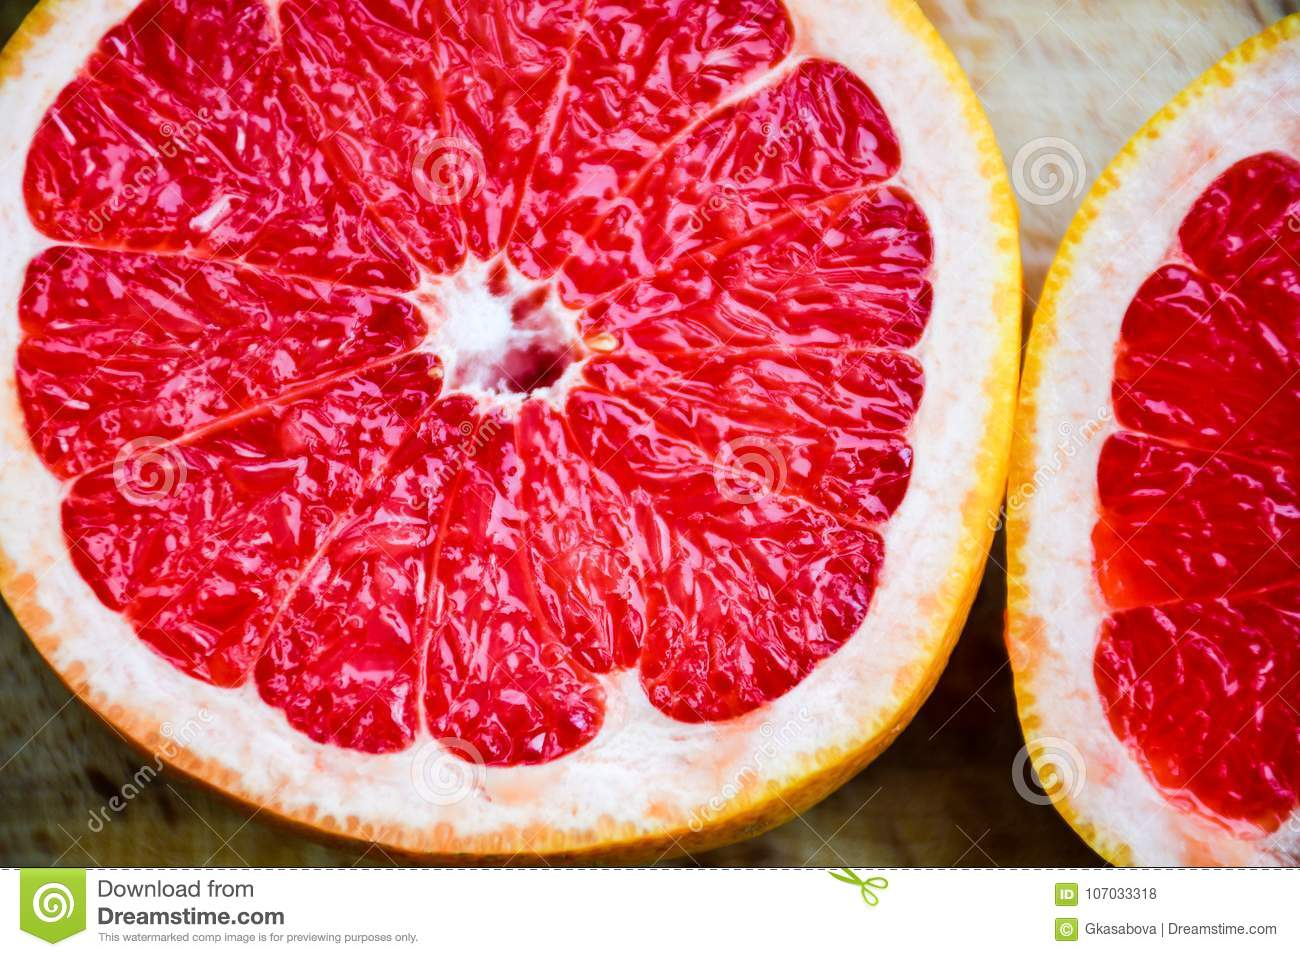 Rode grapefruit